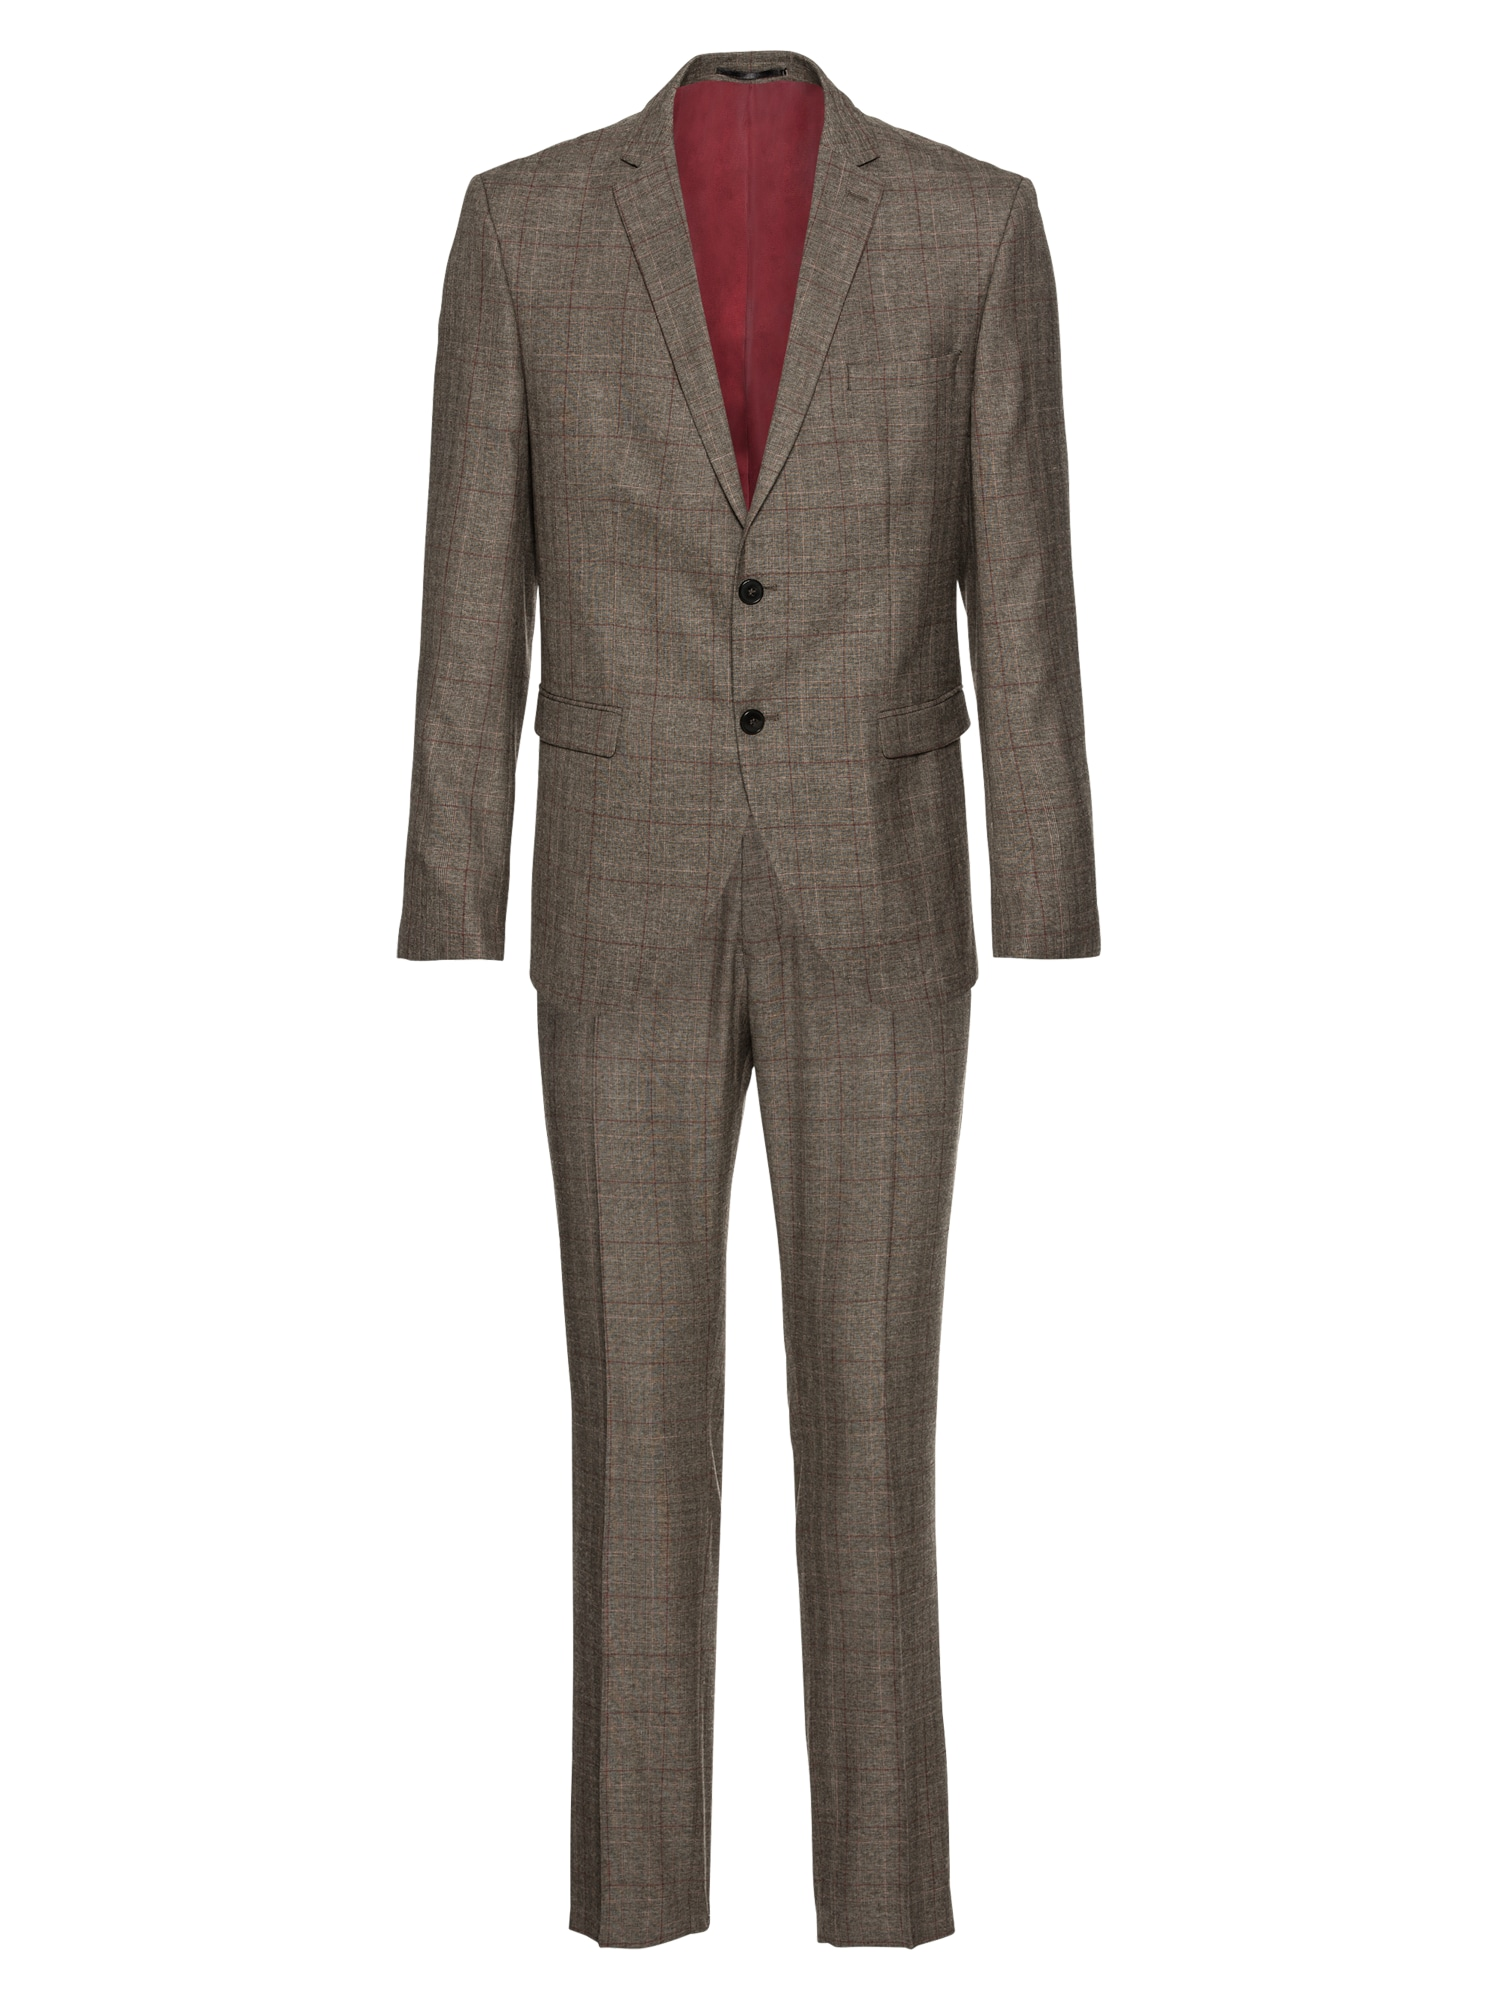 Oblek SLHSLIM-MYLOLOGAN BROWN CHECK SUIT B hnědá SELECTED HOMME